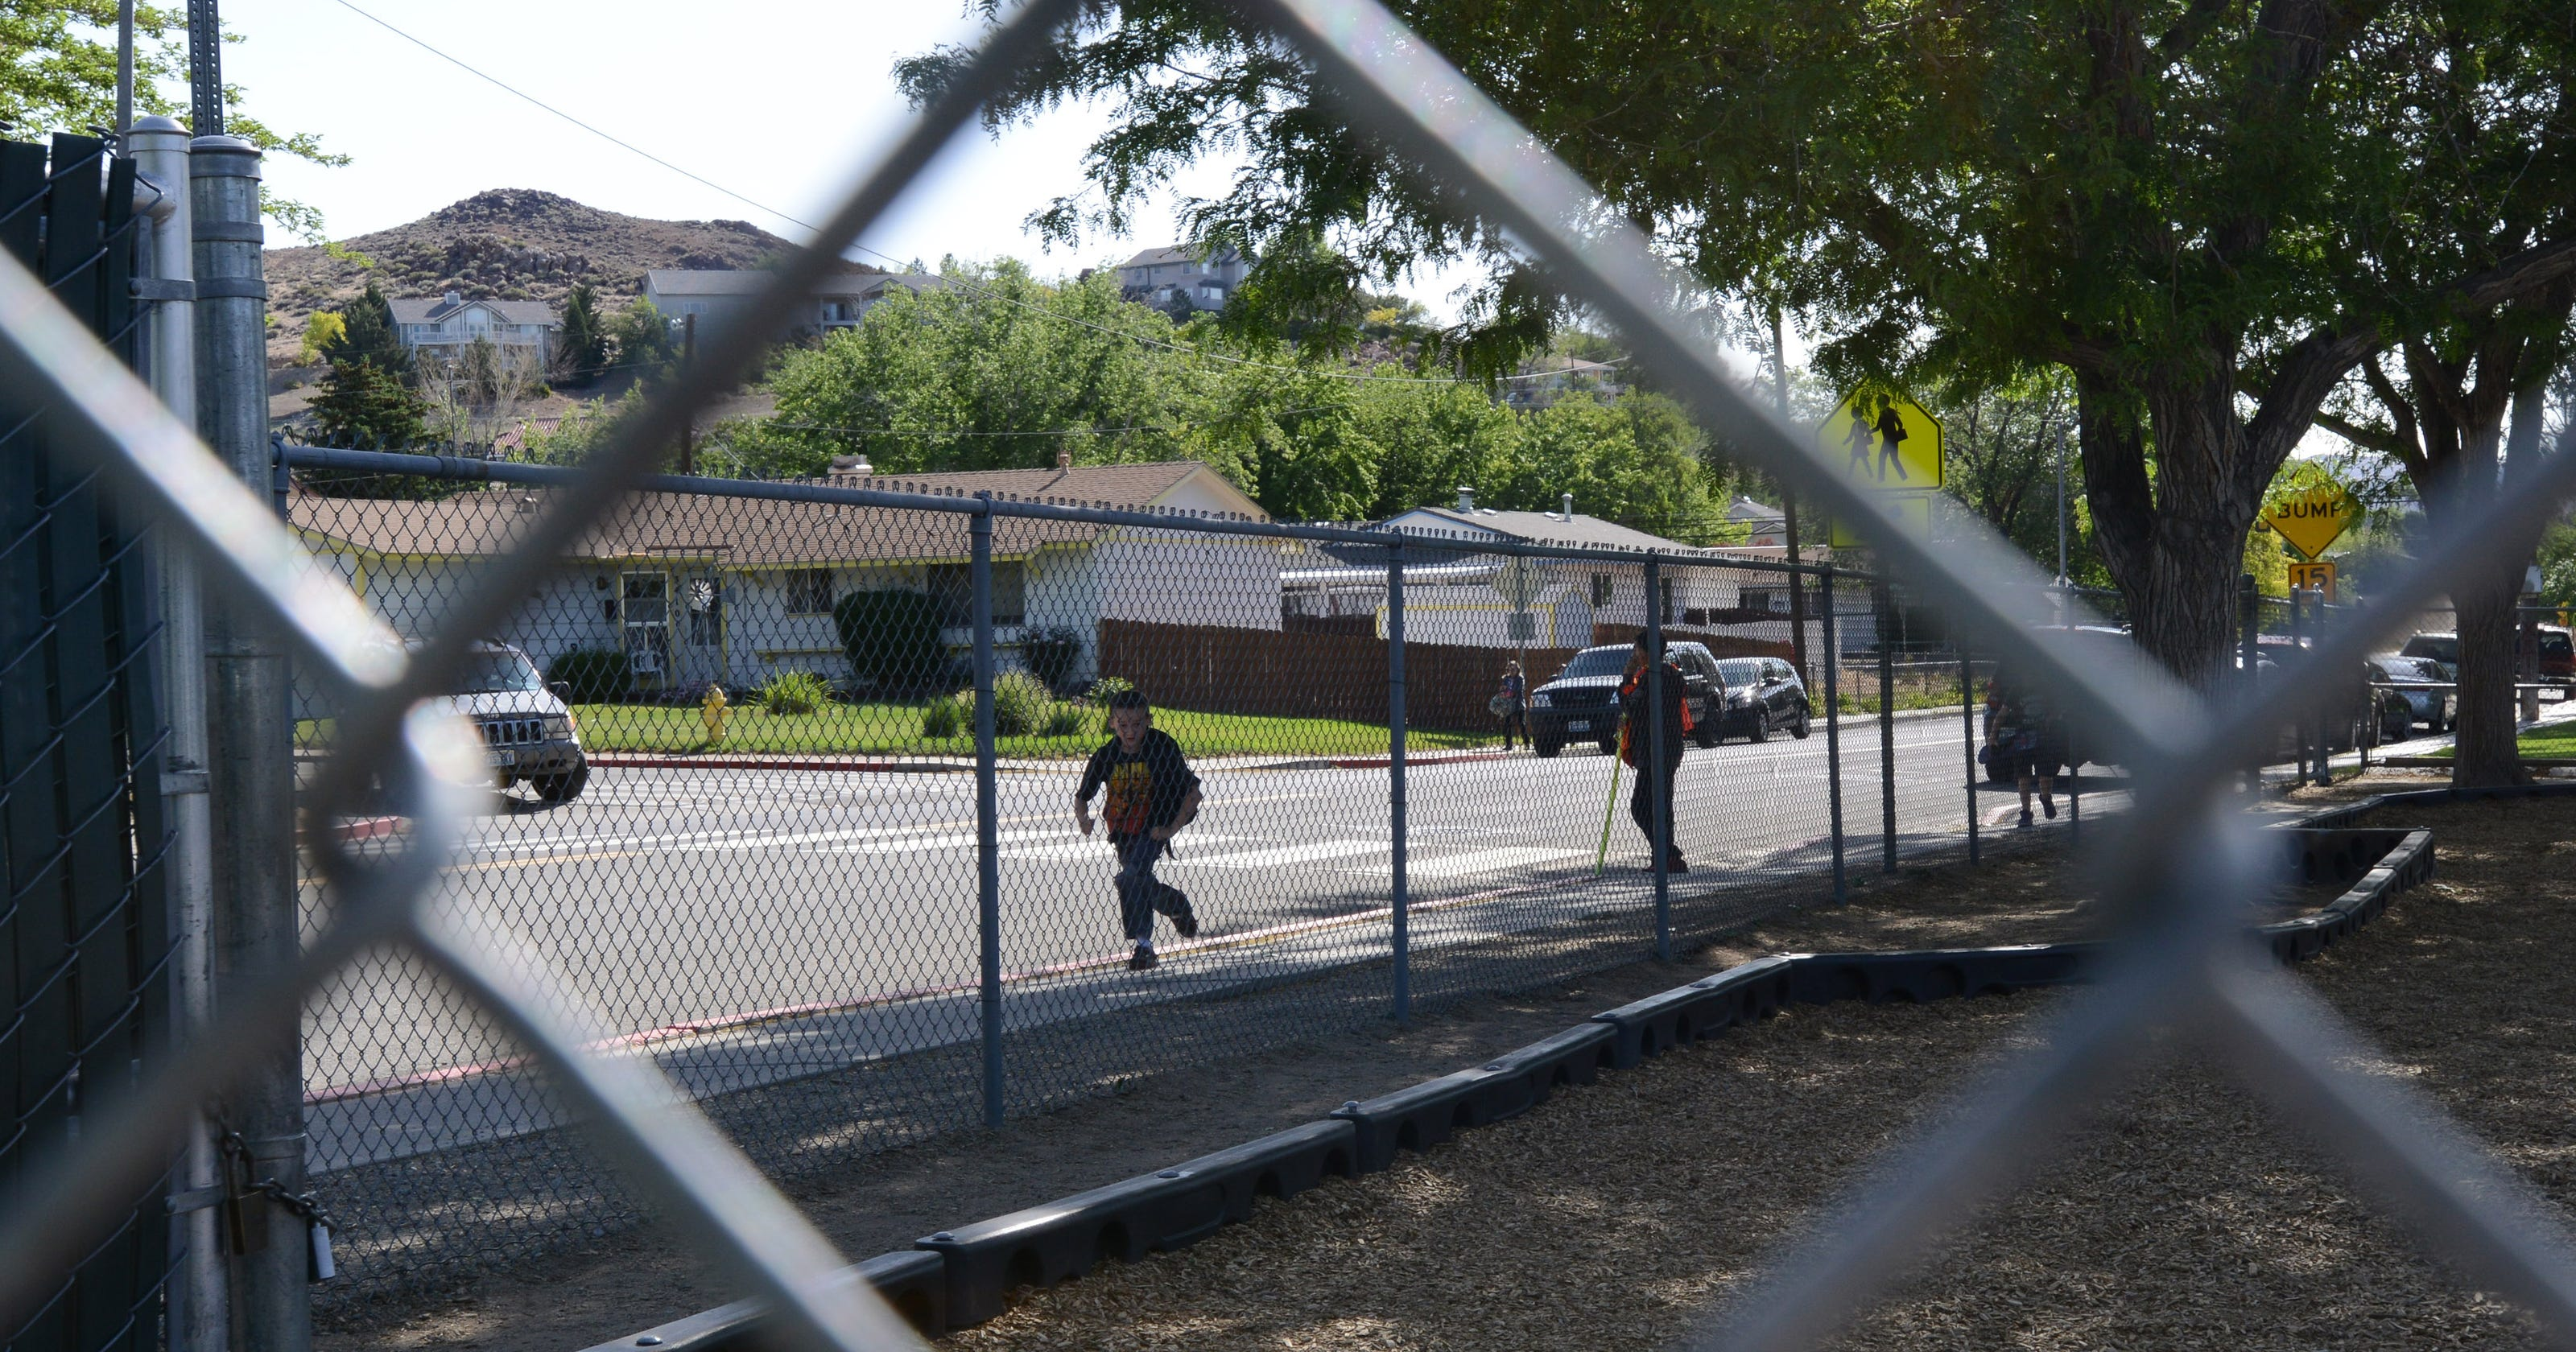 District to spend $5 million on safety improvements